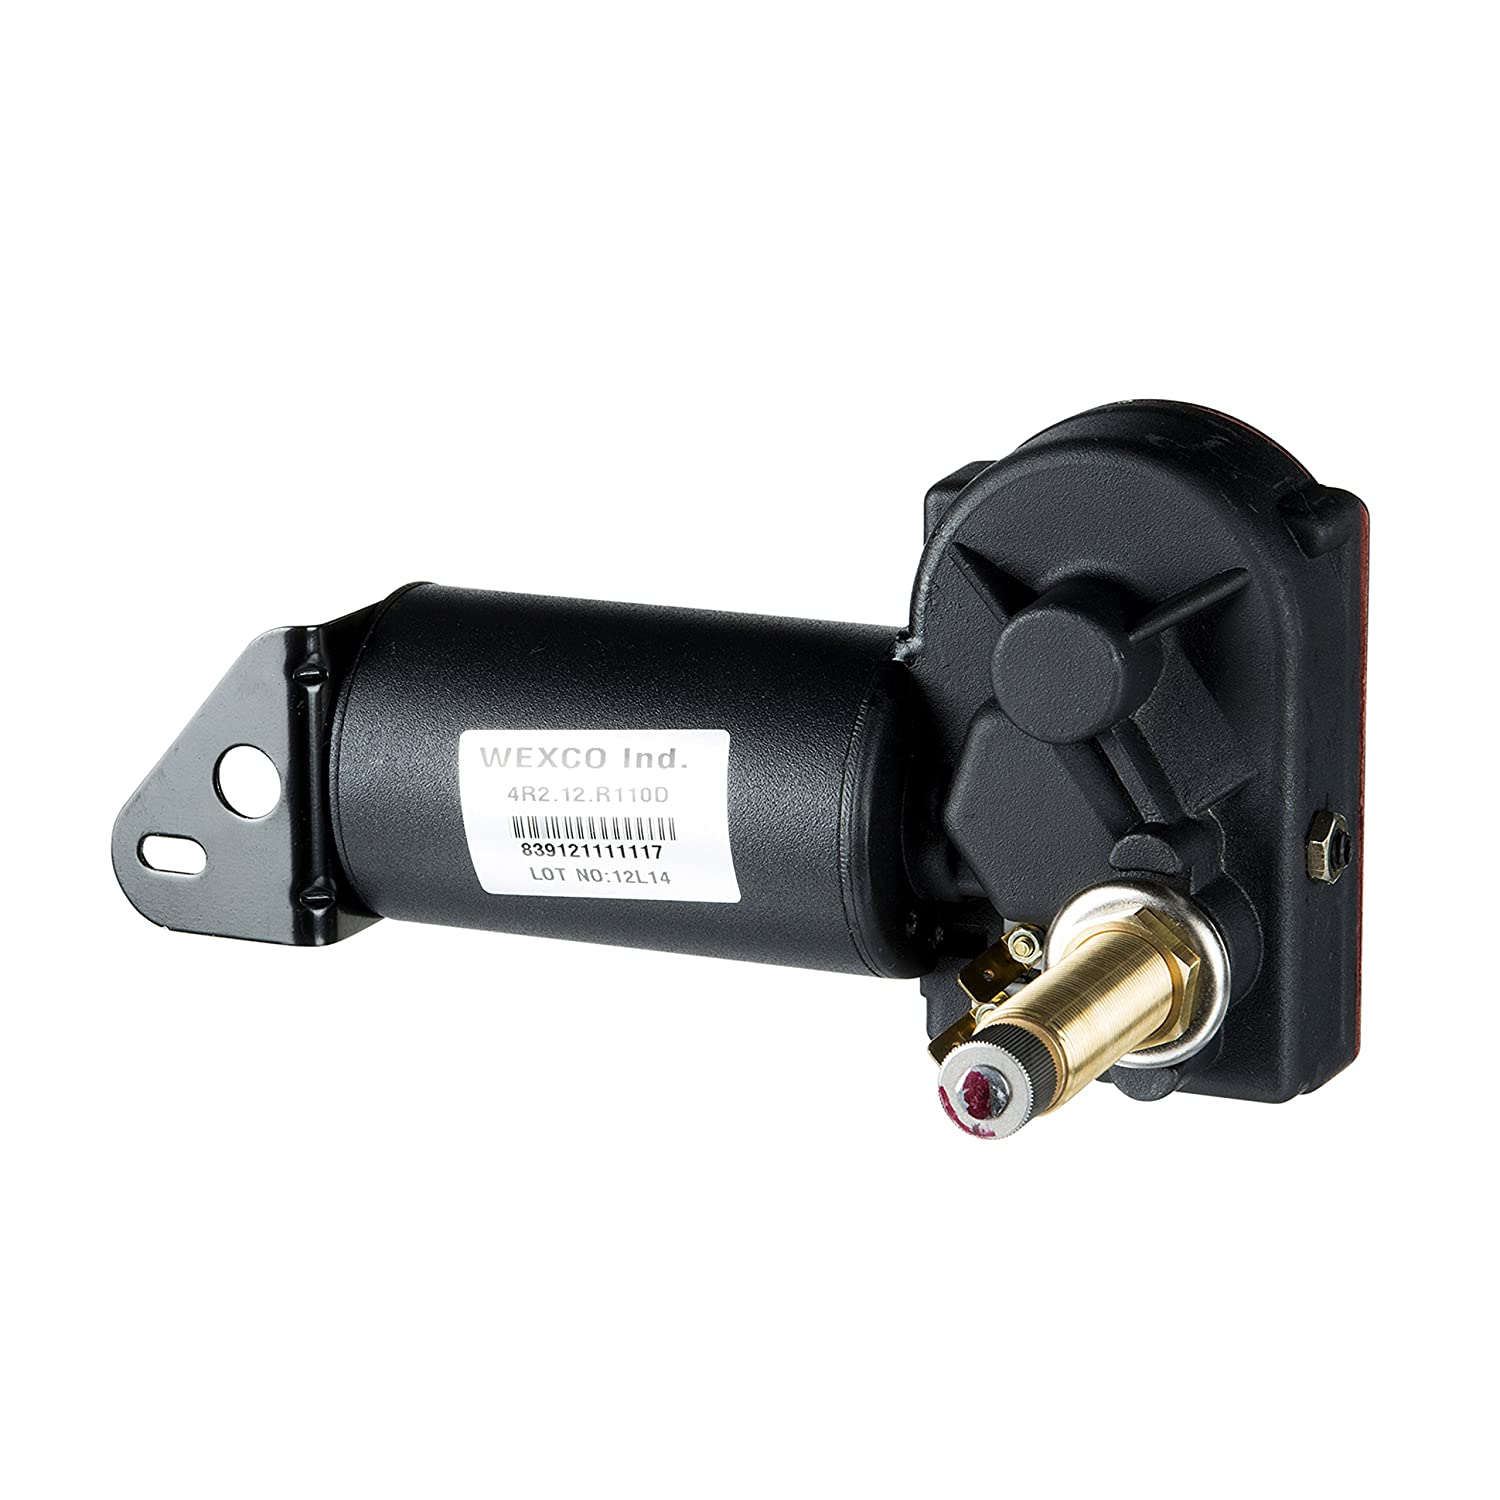 3.5 Wexco Wiper Motor Three and a half inch CE Certified 4A3.12.R110DCE shaft 12V